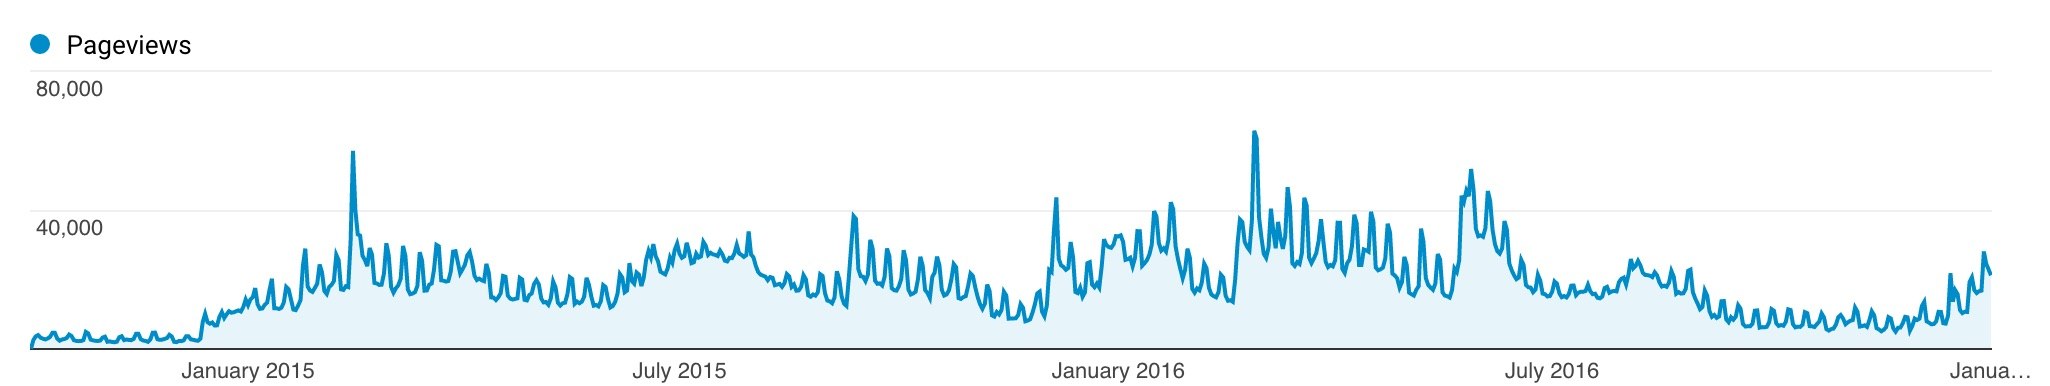 pageviews-per-day